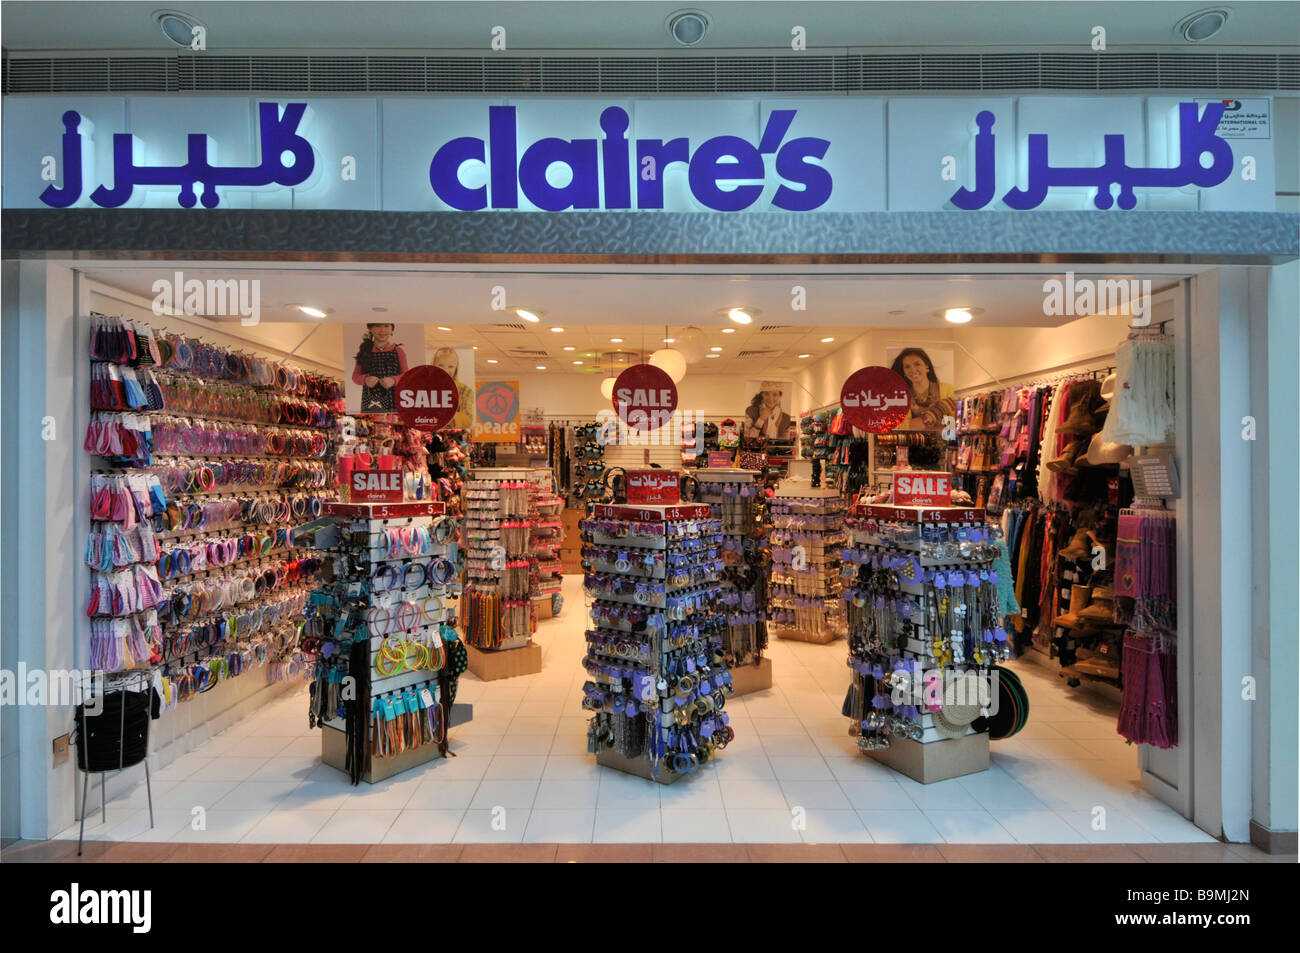 abu dhabi marina shopping mall claires store and shopfront with stock photo royalty free image. Black Bedroom Furniture Sets. Home Design Ideas